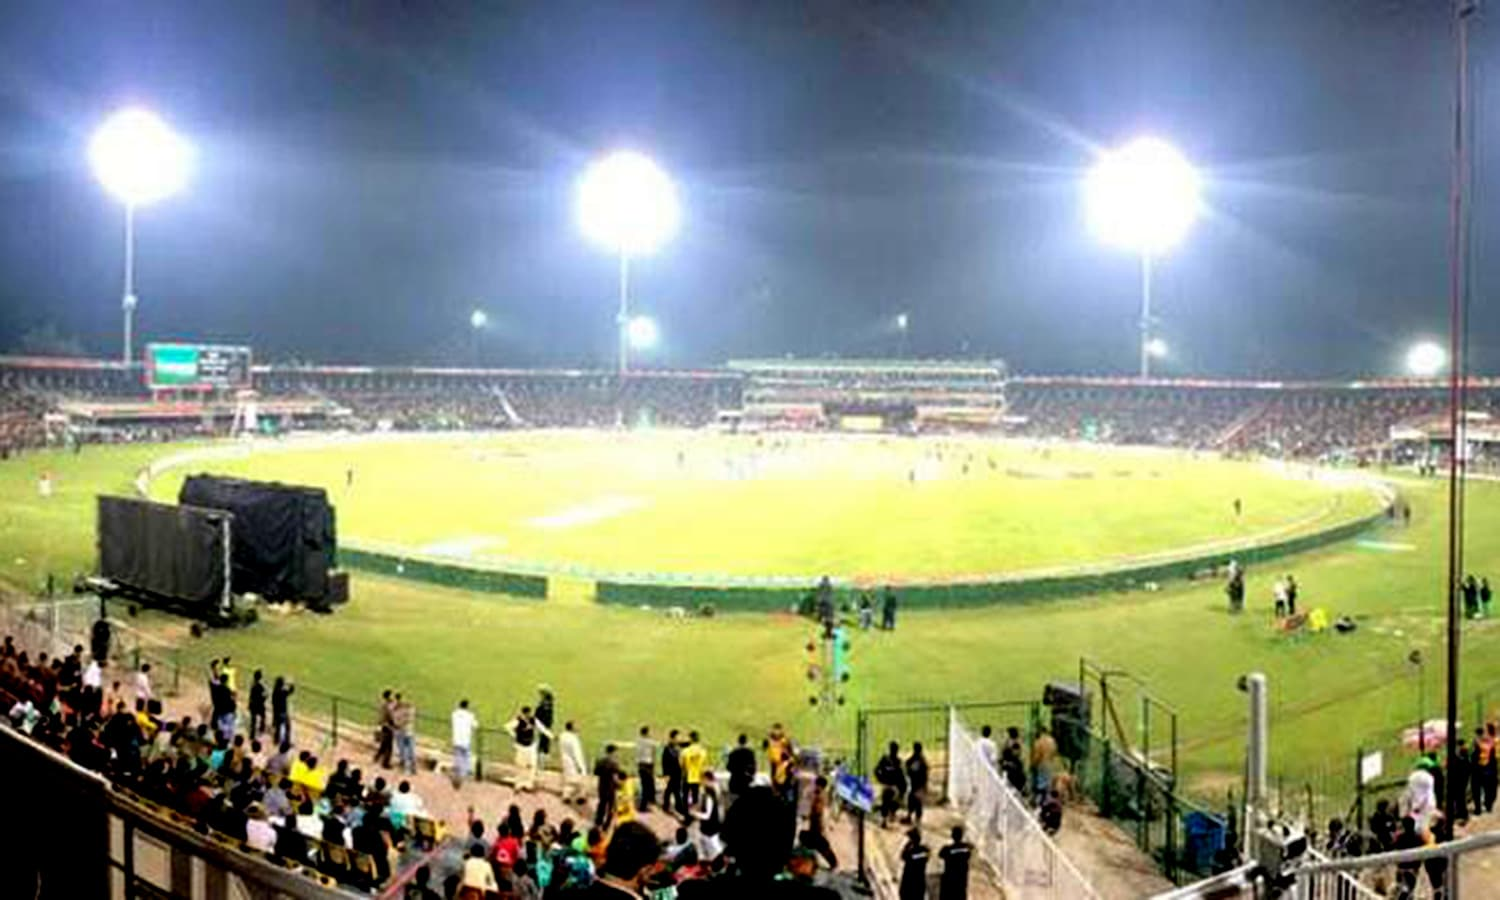 Cricket returns: The 2017 PSL final at Gaddafi Stadium. (Pic: GeoTV)